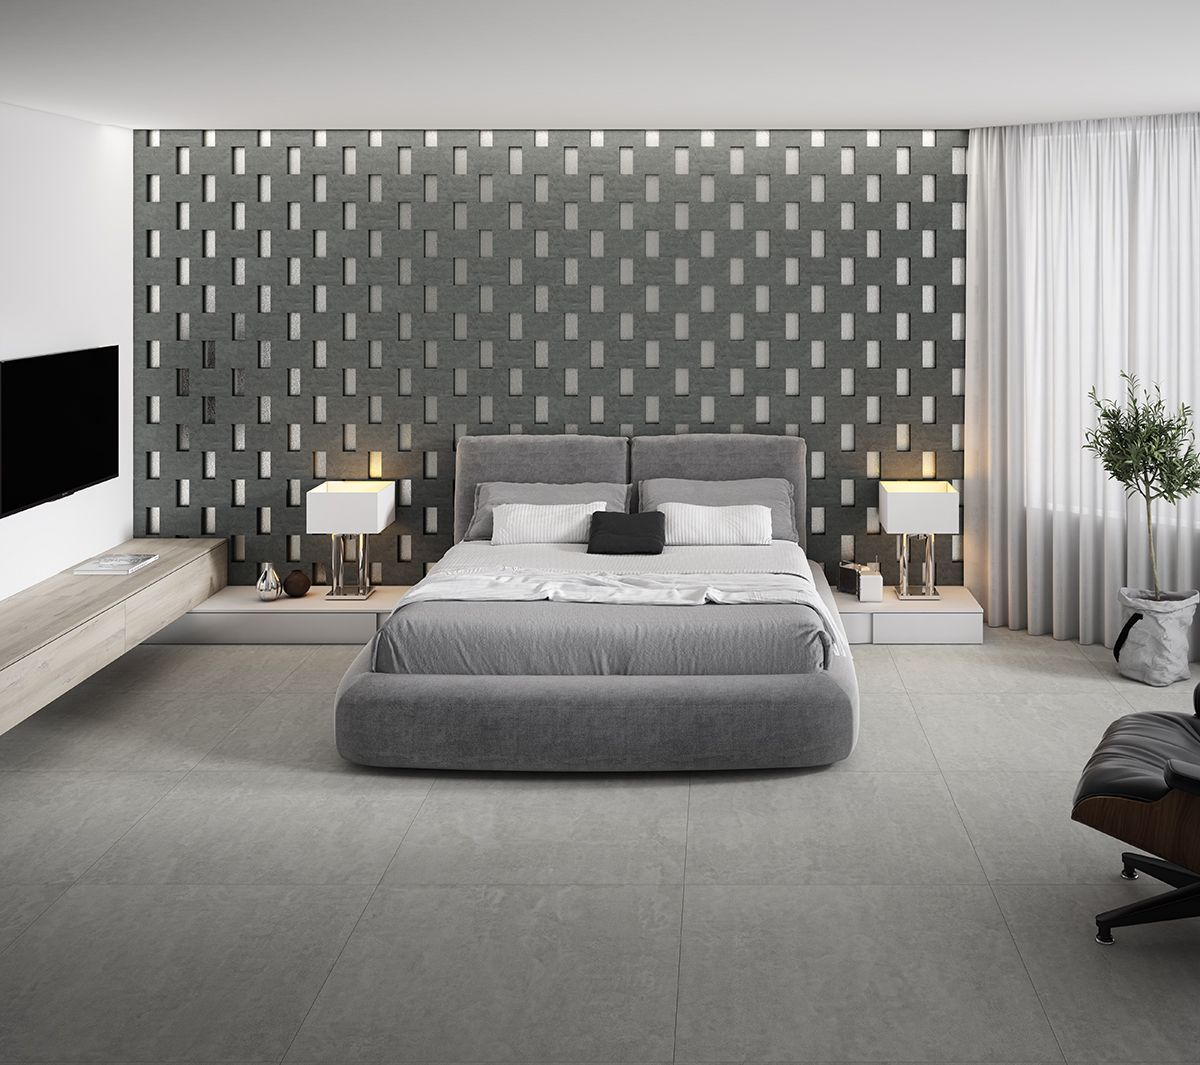 Tiles In The Bedroom These Grey Floor Tiles Give A Warmth Feel To This Bedroom Space Giving The Illusion Of A Cosy Grey Floor Tiles Grey Flooring Tile Bedroom